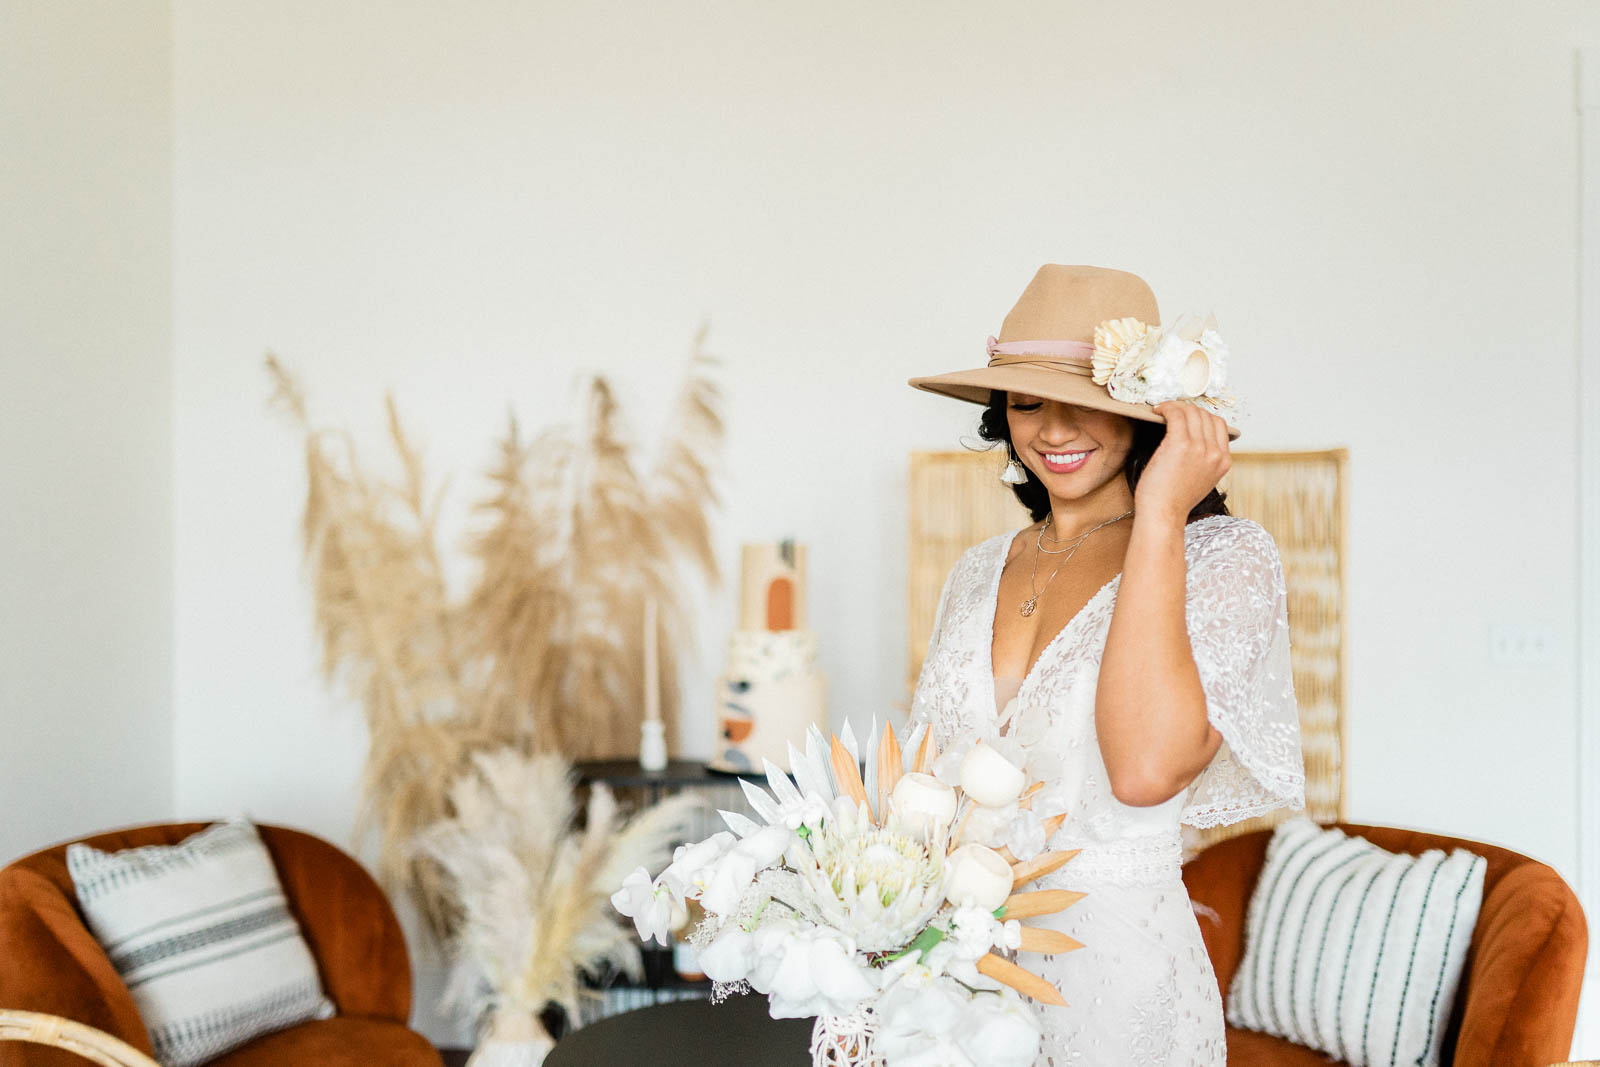 Bride will large brimmed hat holding white bouquet